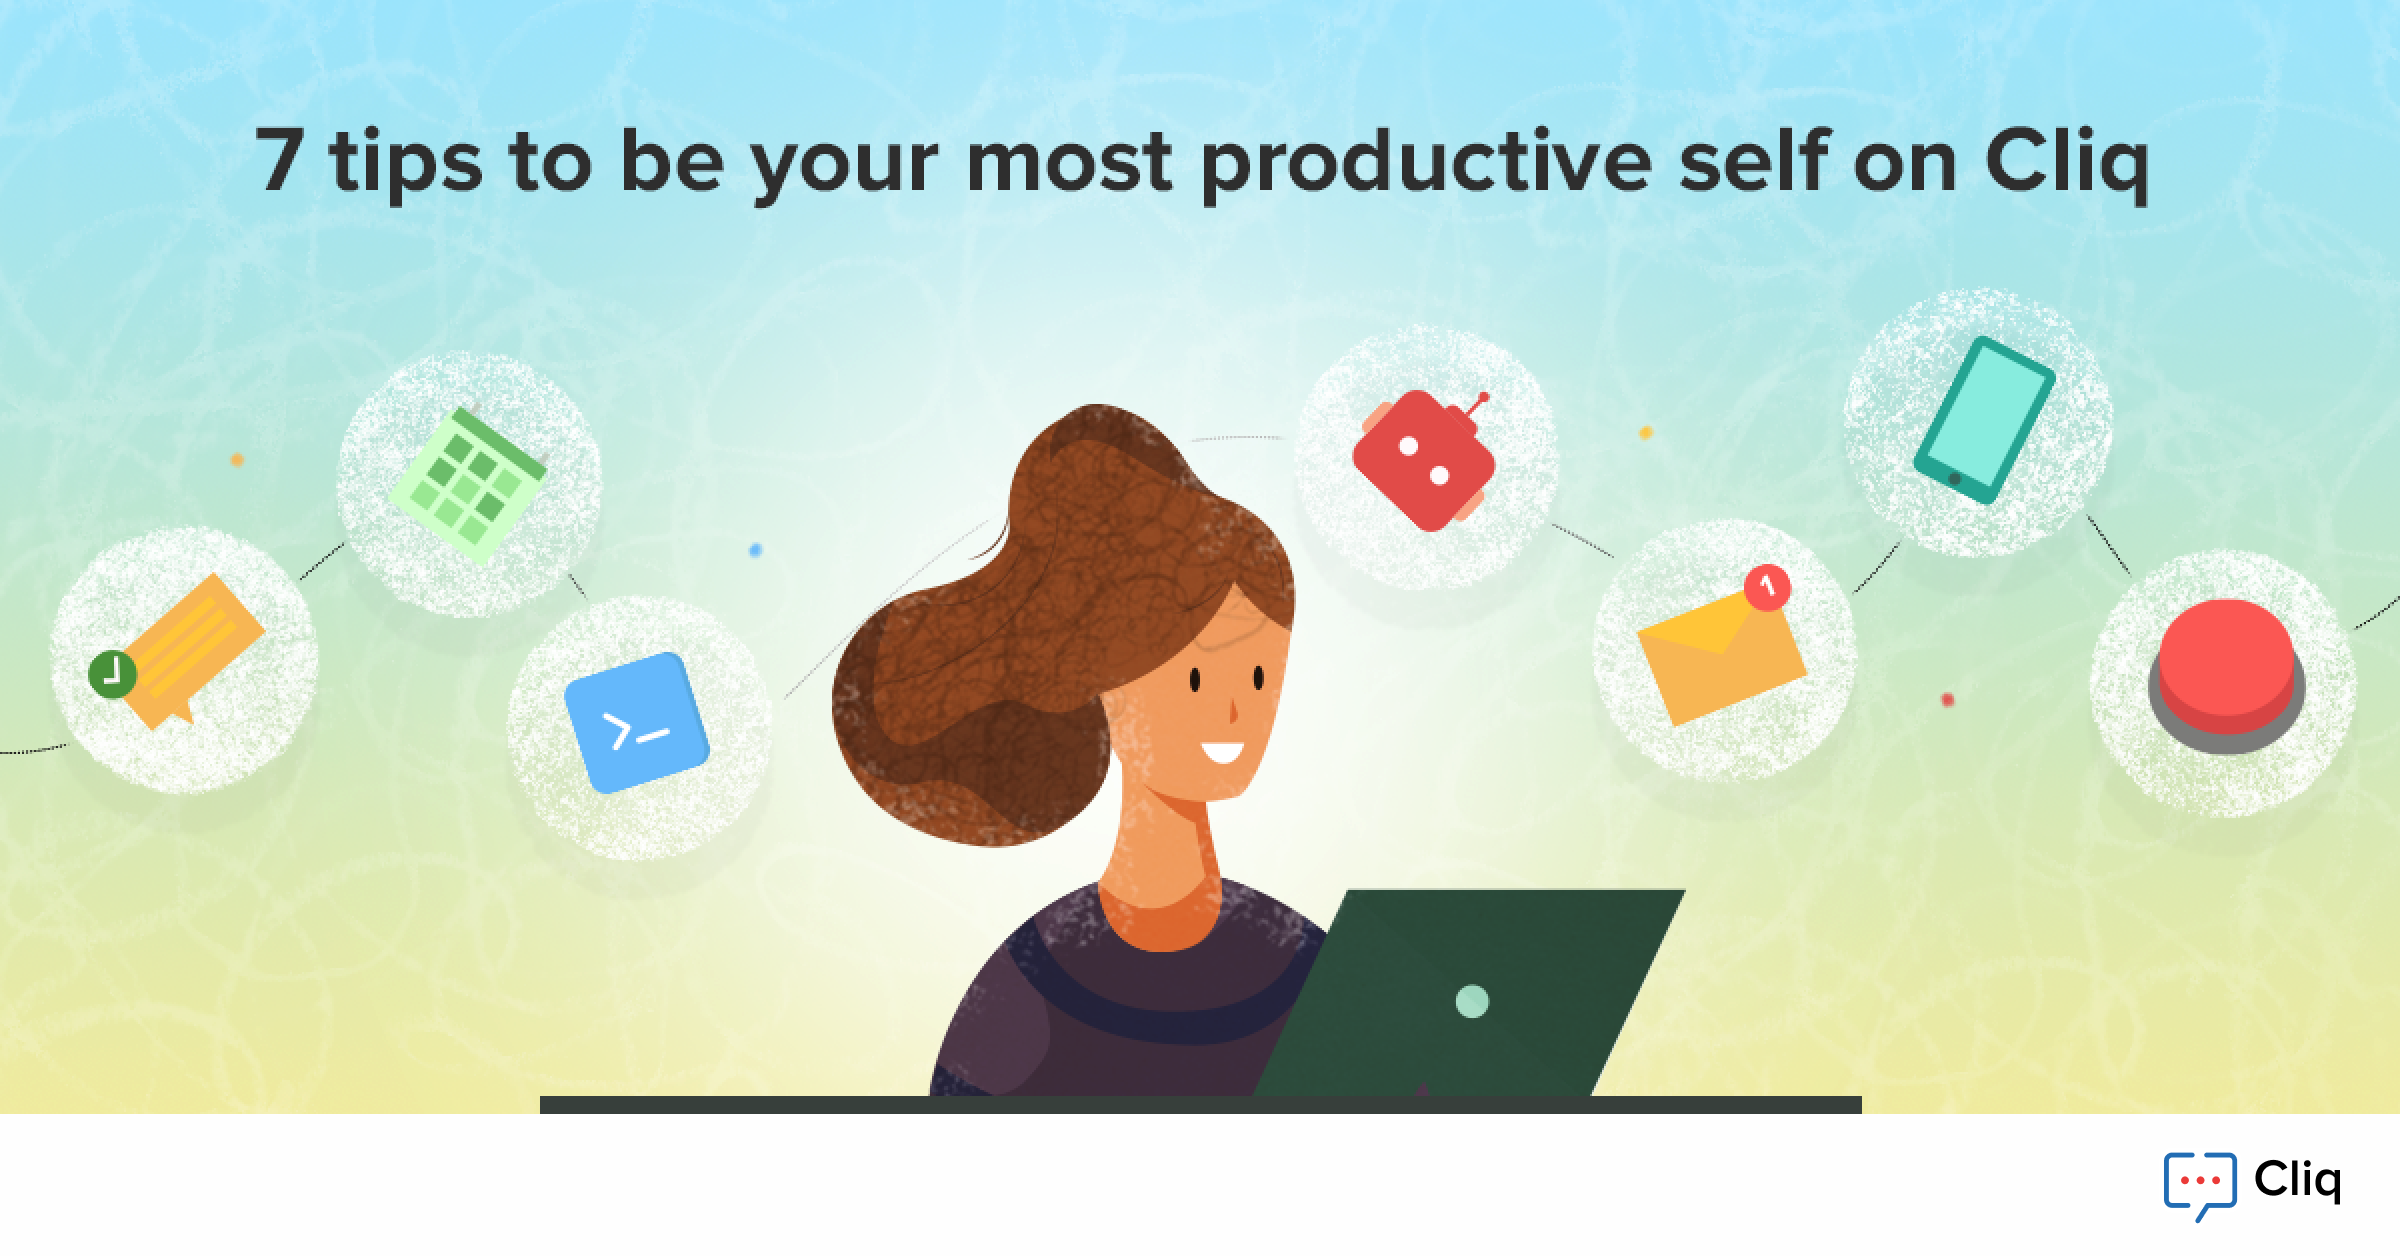 7 tips to be your most productive self on Cliq